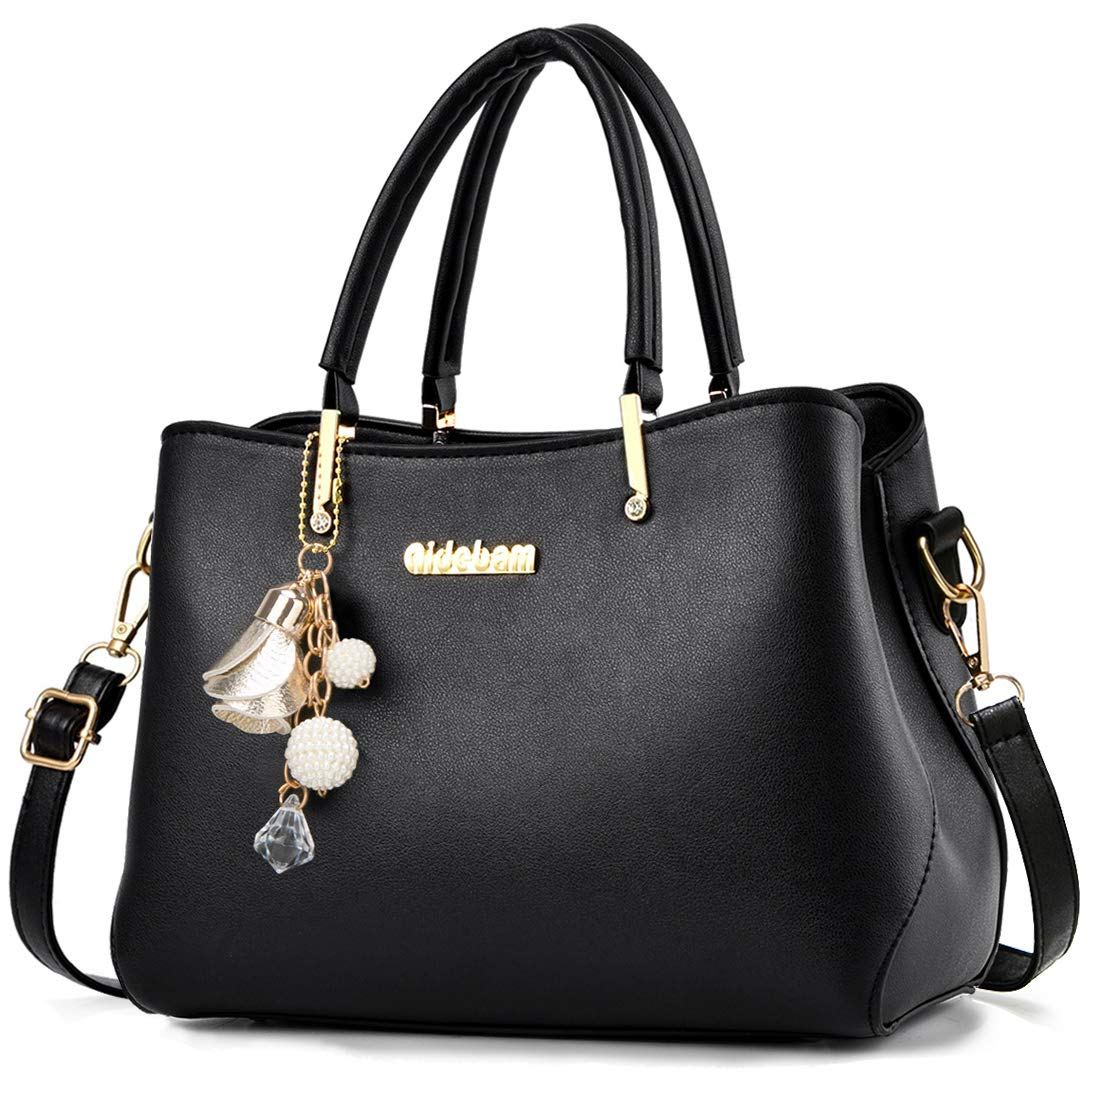 Purses and Handbags for Women Top Handle Satchel Shoulder Bags for Ladies - wiihuu